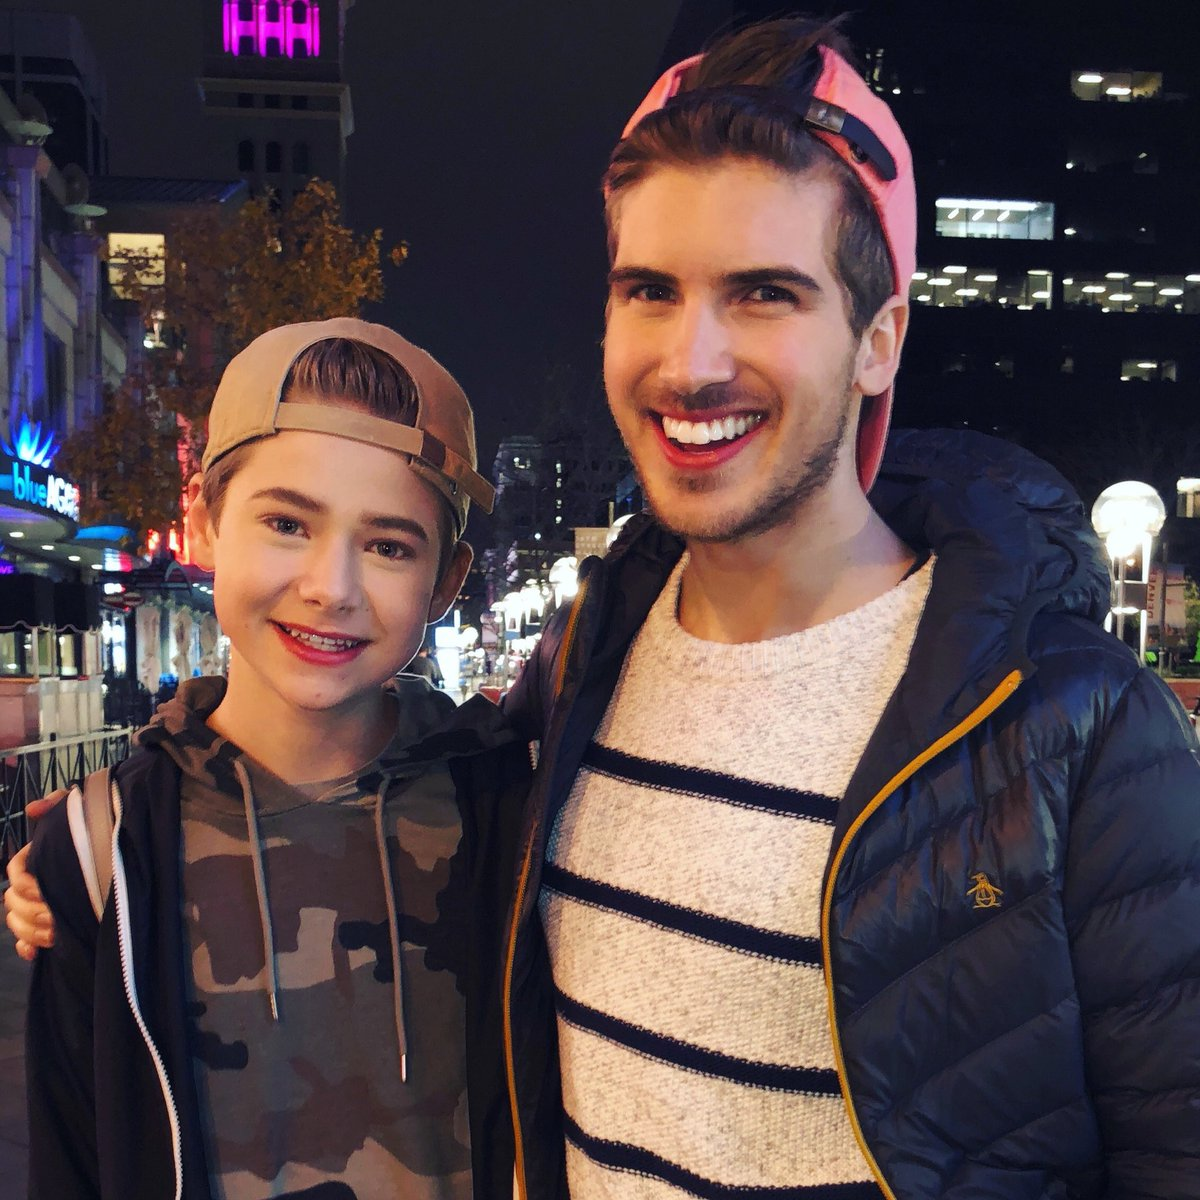 Joey graceffa on twitter so nice to finally meet my little sister joey graceffa on twitter so nice to finally meet my little sister jakewarden in denver last night so proud to watch him grow up youtube m4hsunfo